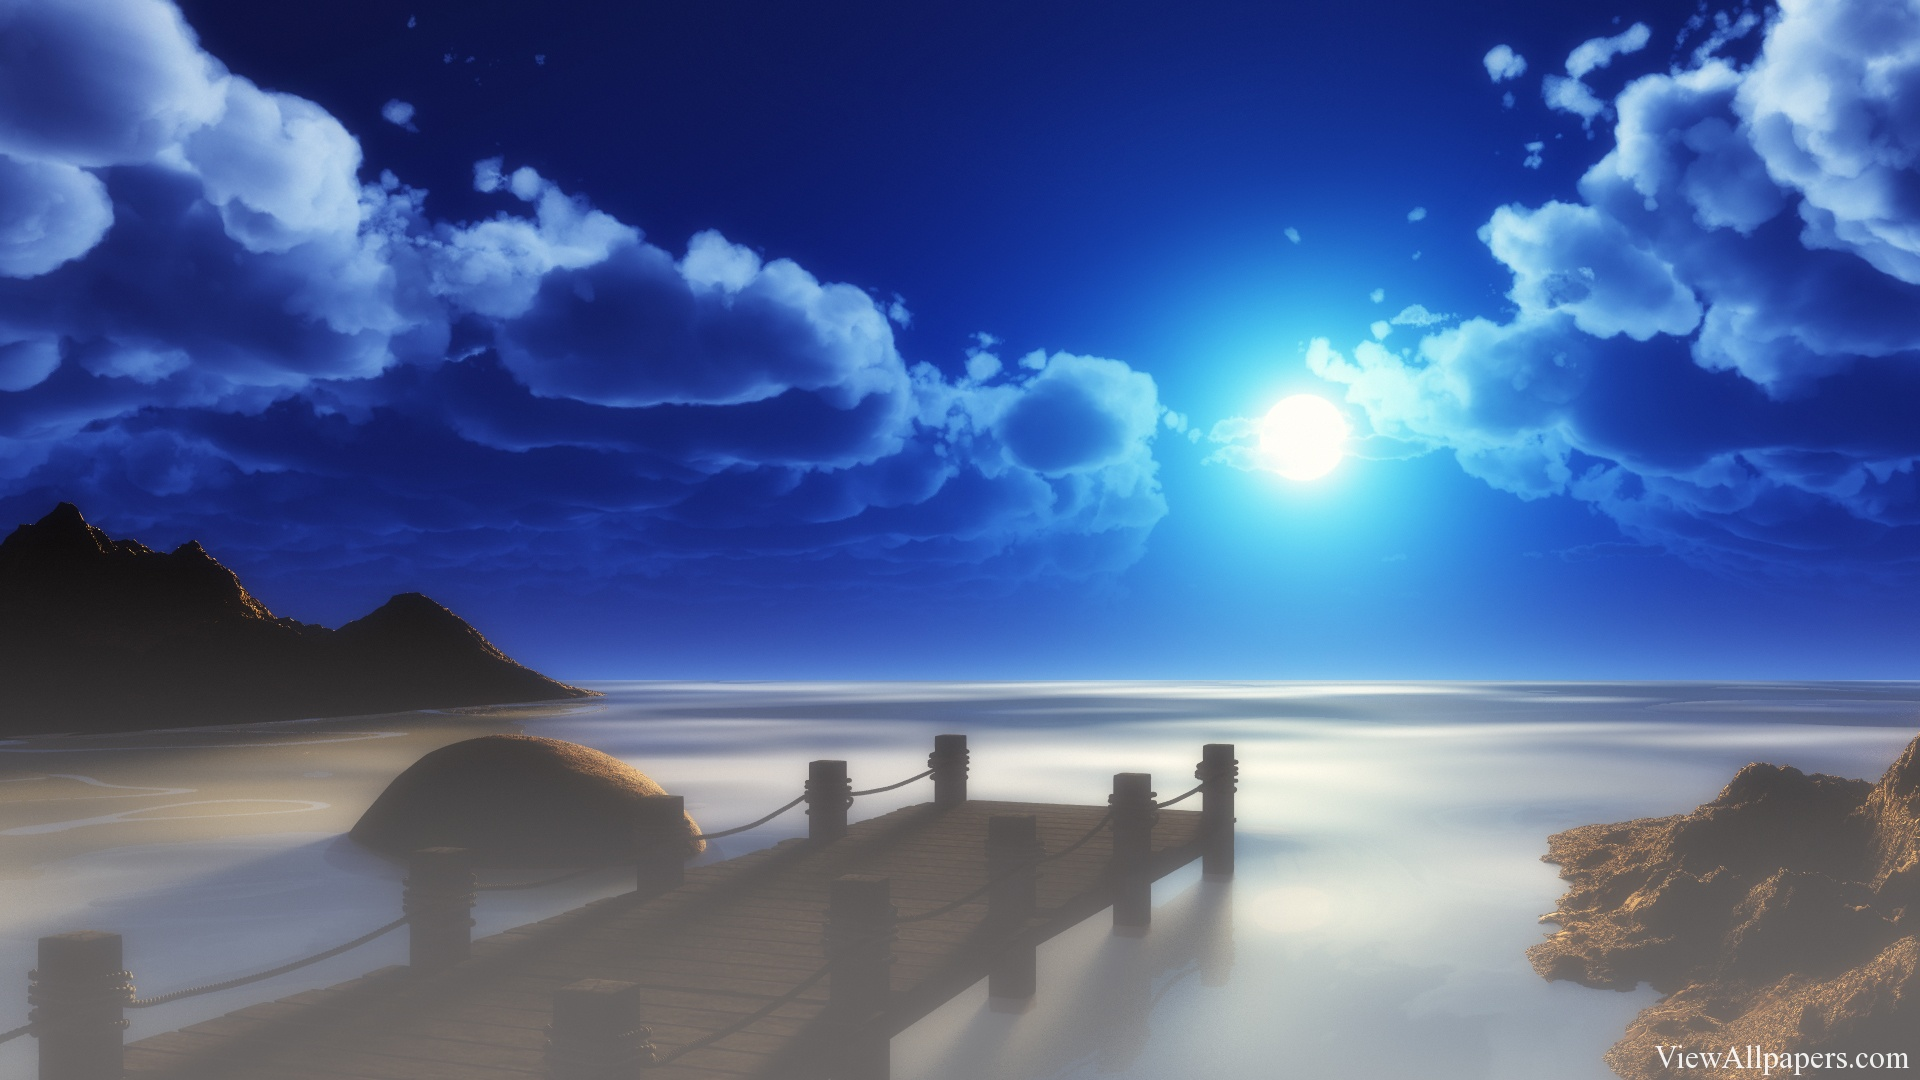 beach night hd wallpapers - wallpapersafari